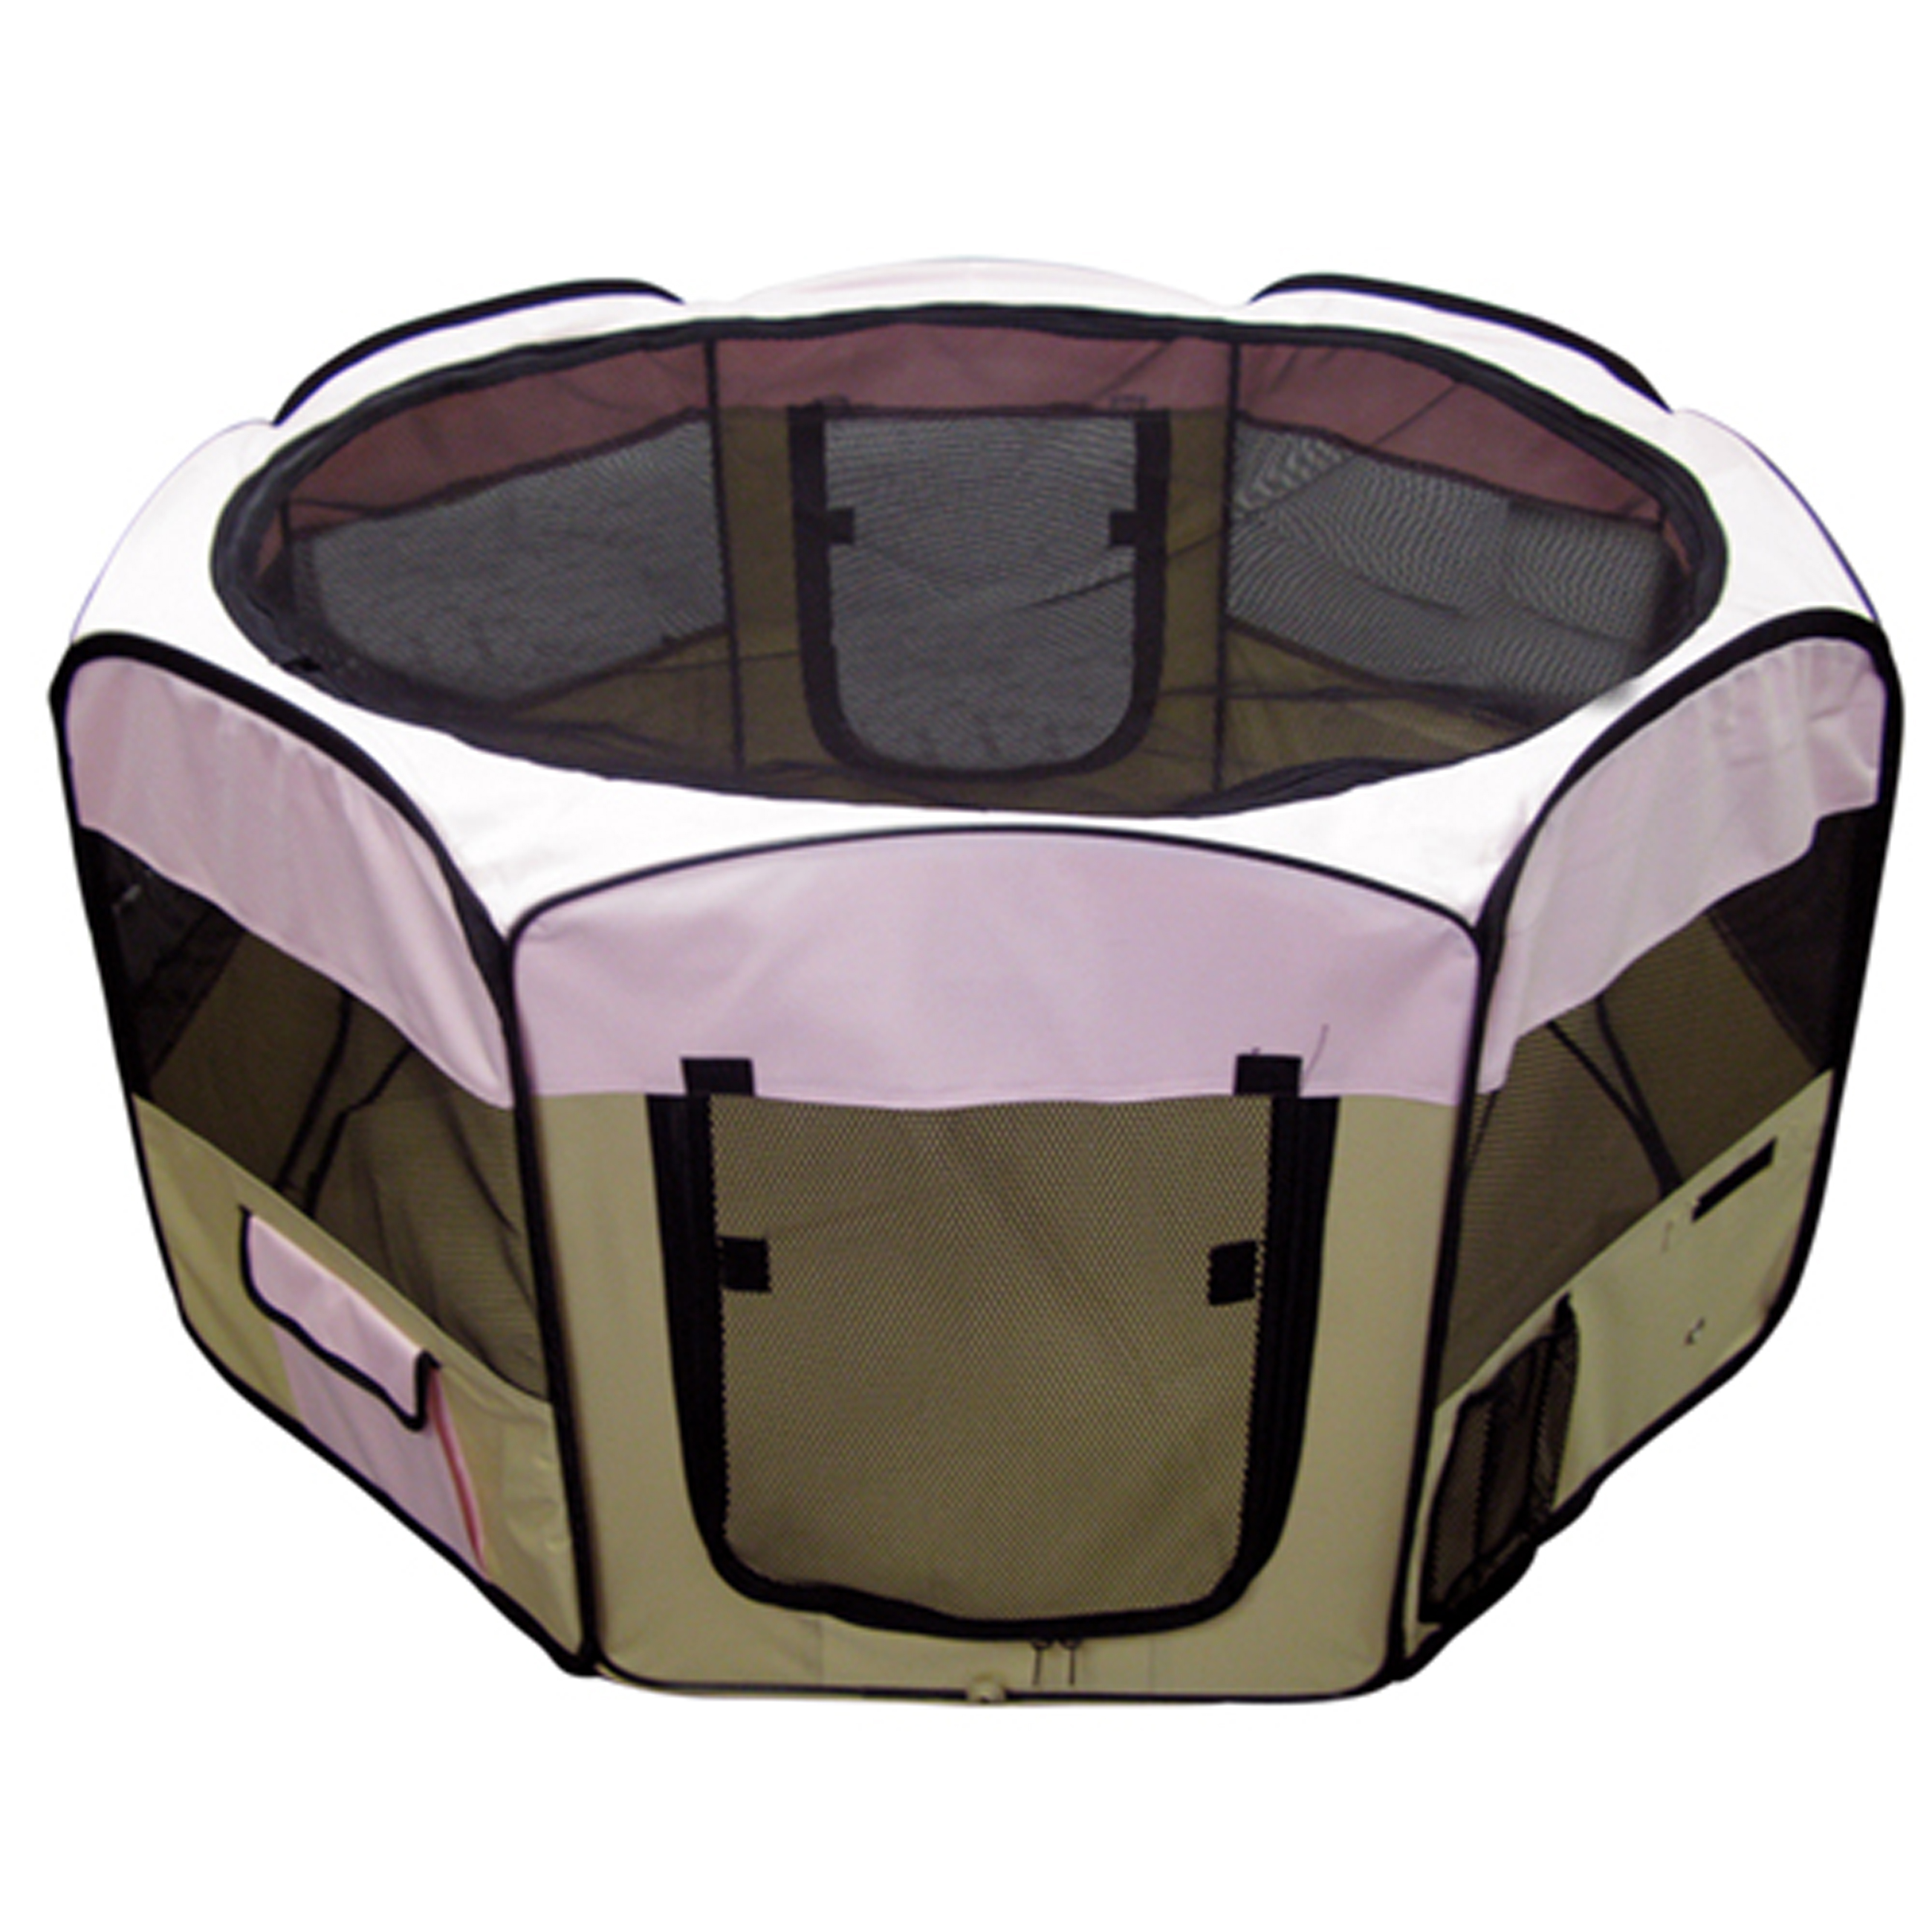 "Pink Pet Playpen 45"" Exercise Puppy Dog Pen Kennel Easy Folding Design"